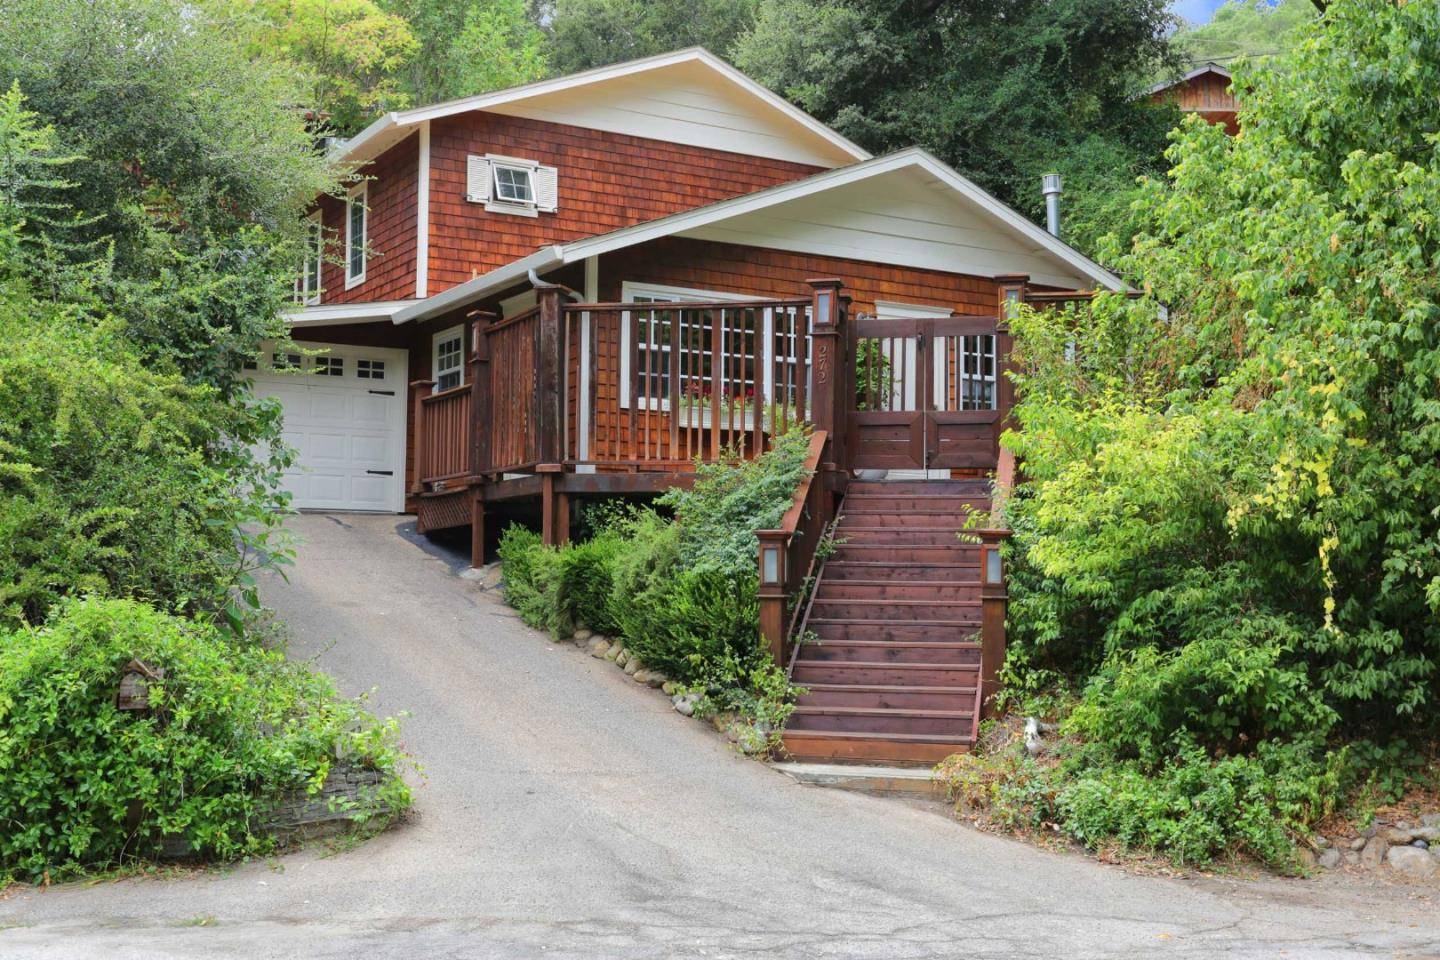 Single Family Home for Sale at 272 Hart Lane Ben Lomond, California 95005 United States